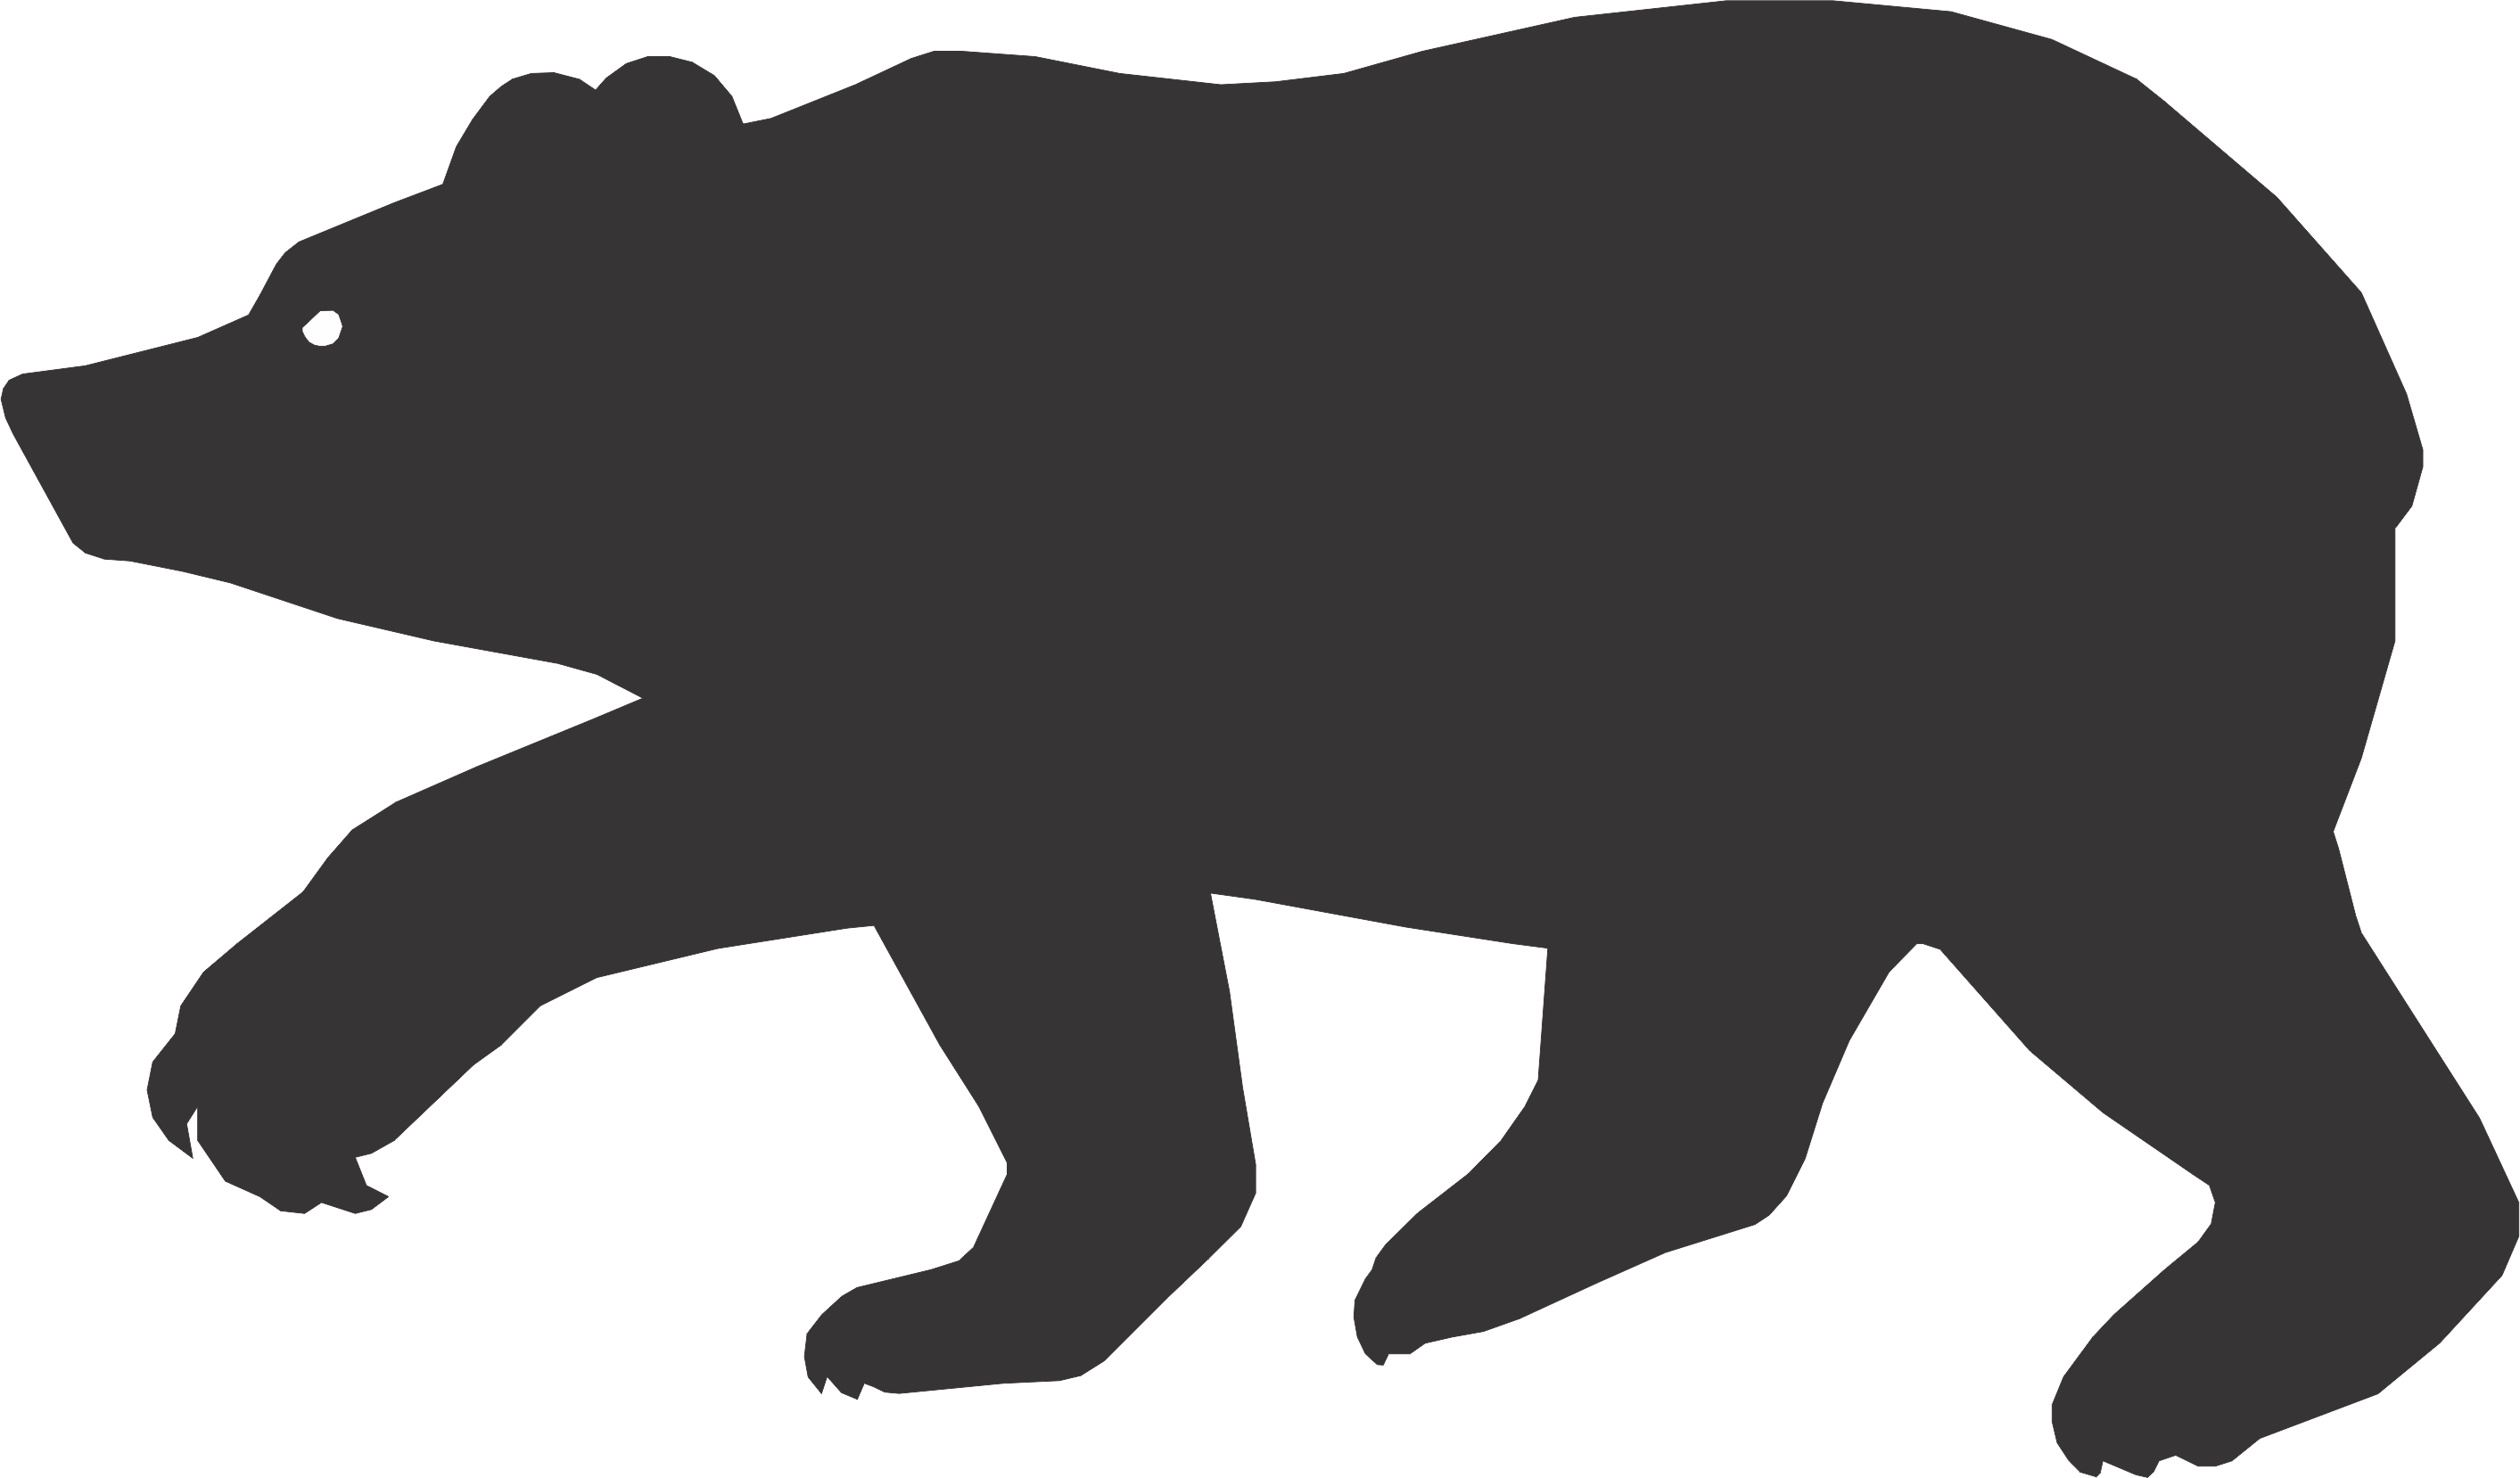 Free Bear Silhouette, Download Free Clip Art, Free Clip Art on.